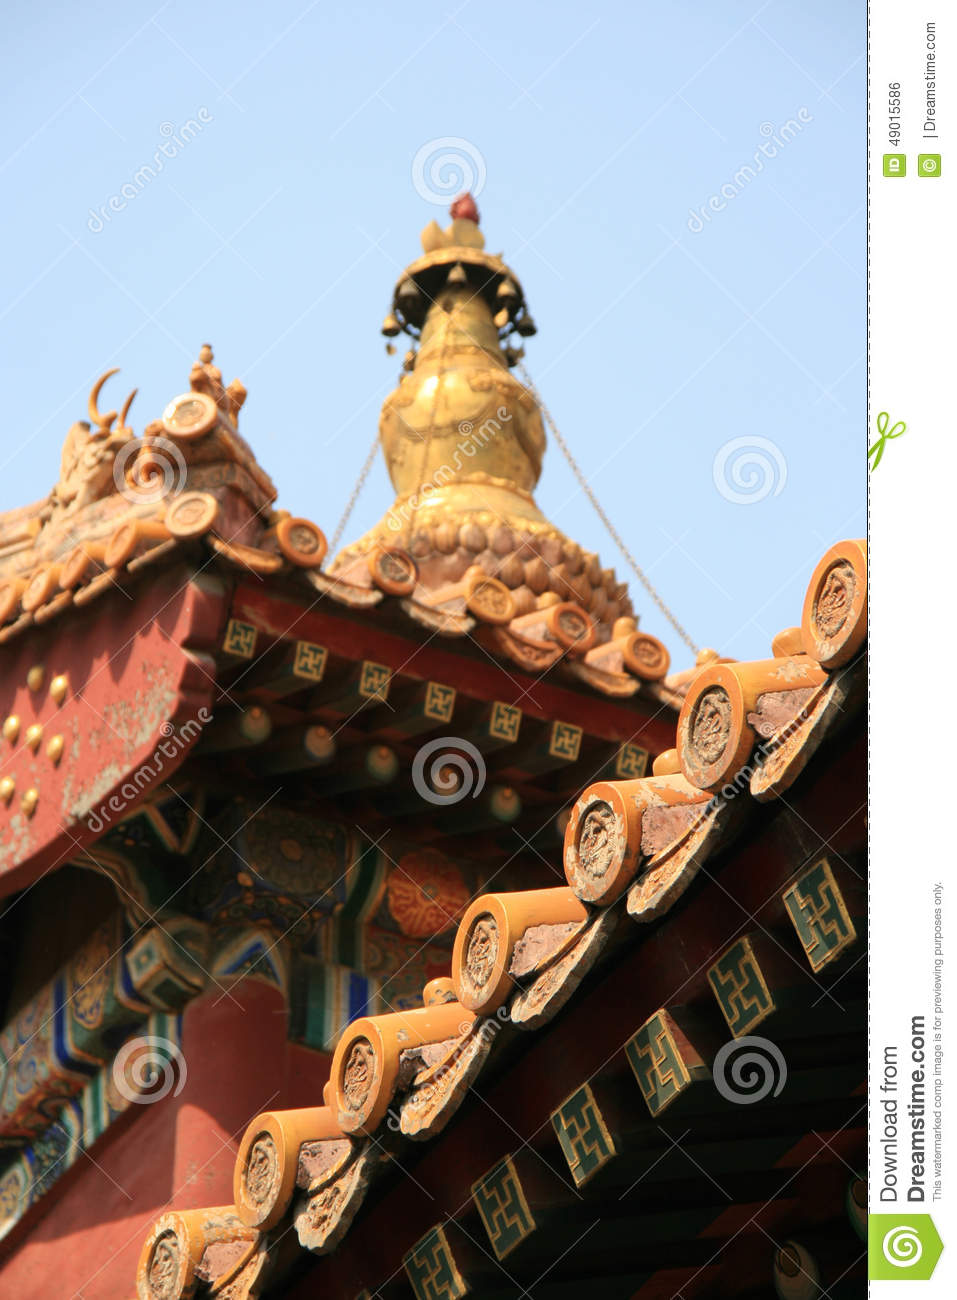 Painted and sculptured patterns decorate the facade and the roof of a buddhist temple in Beijing (China)